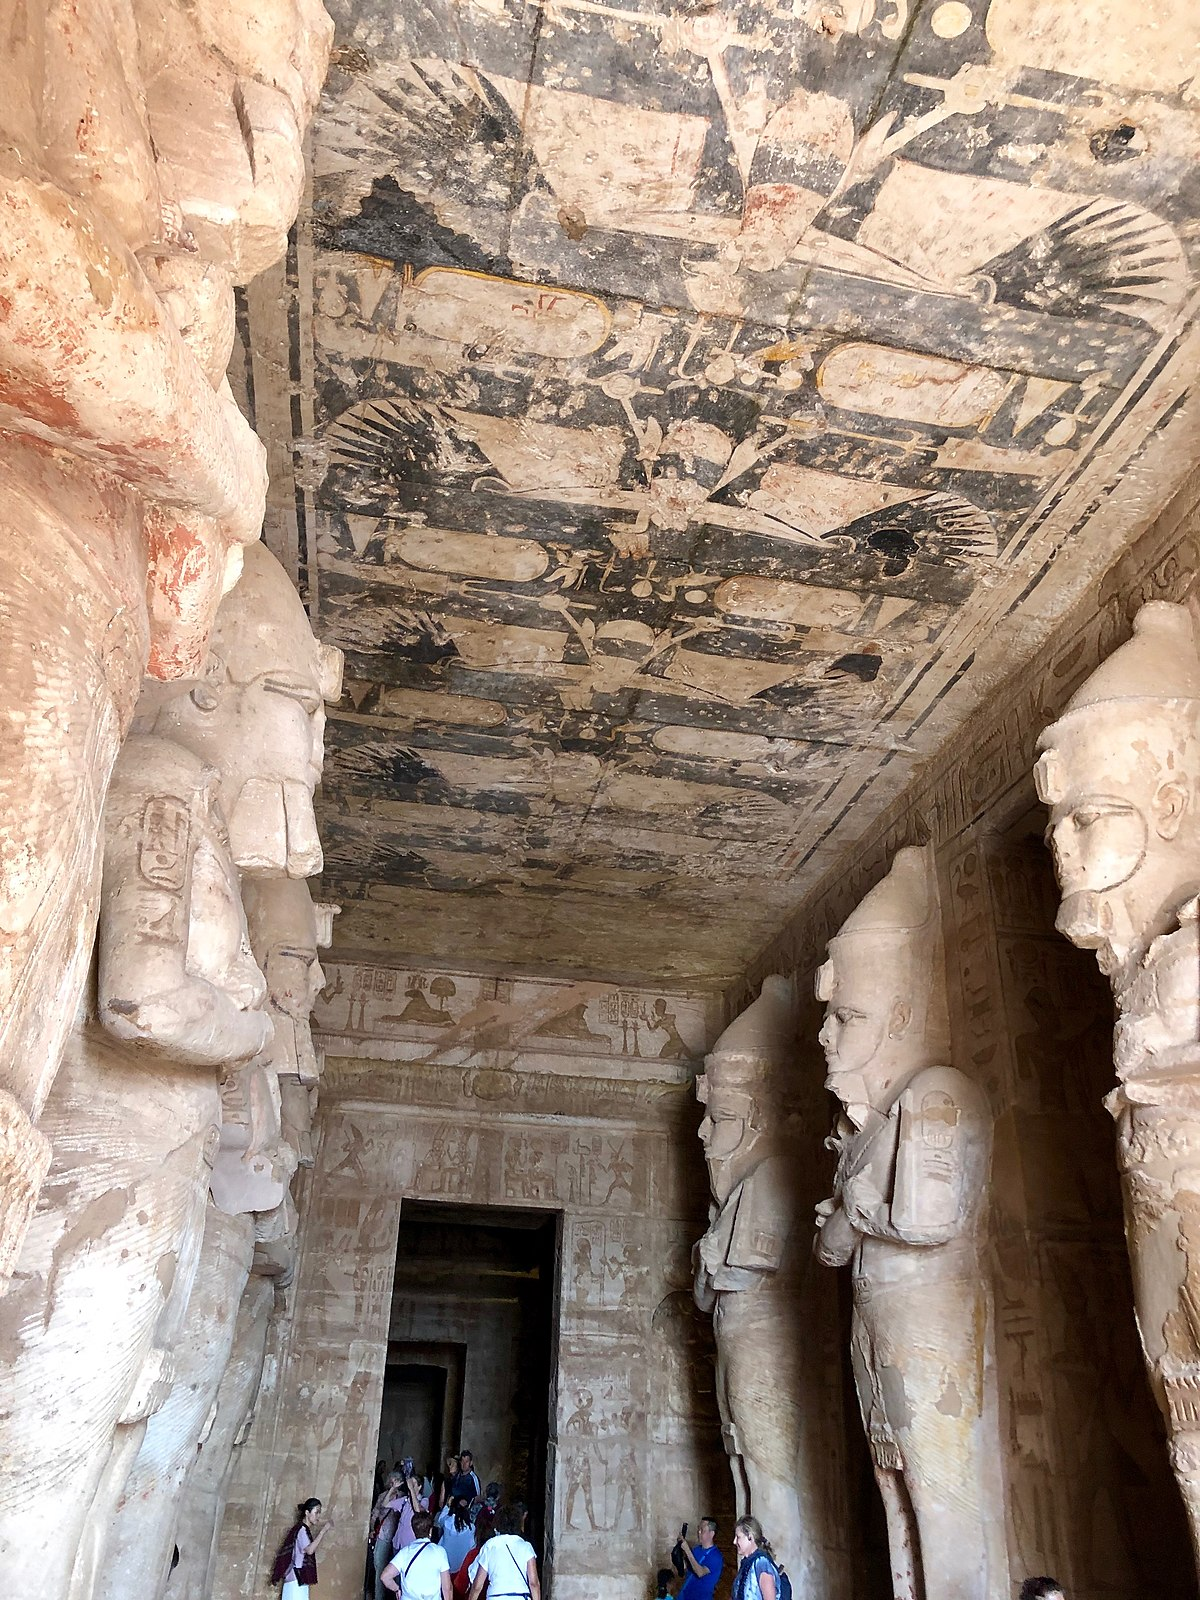 File:Great Hall, The Great Temple of Ramses II, Abu Simbel ...